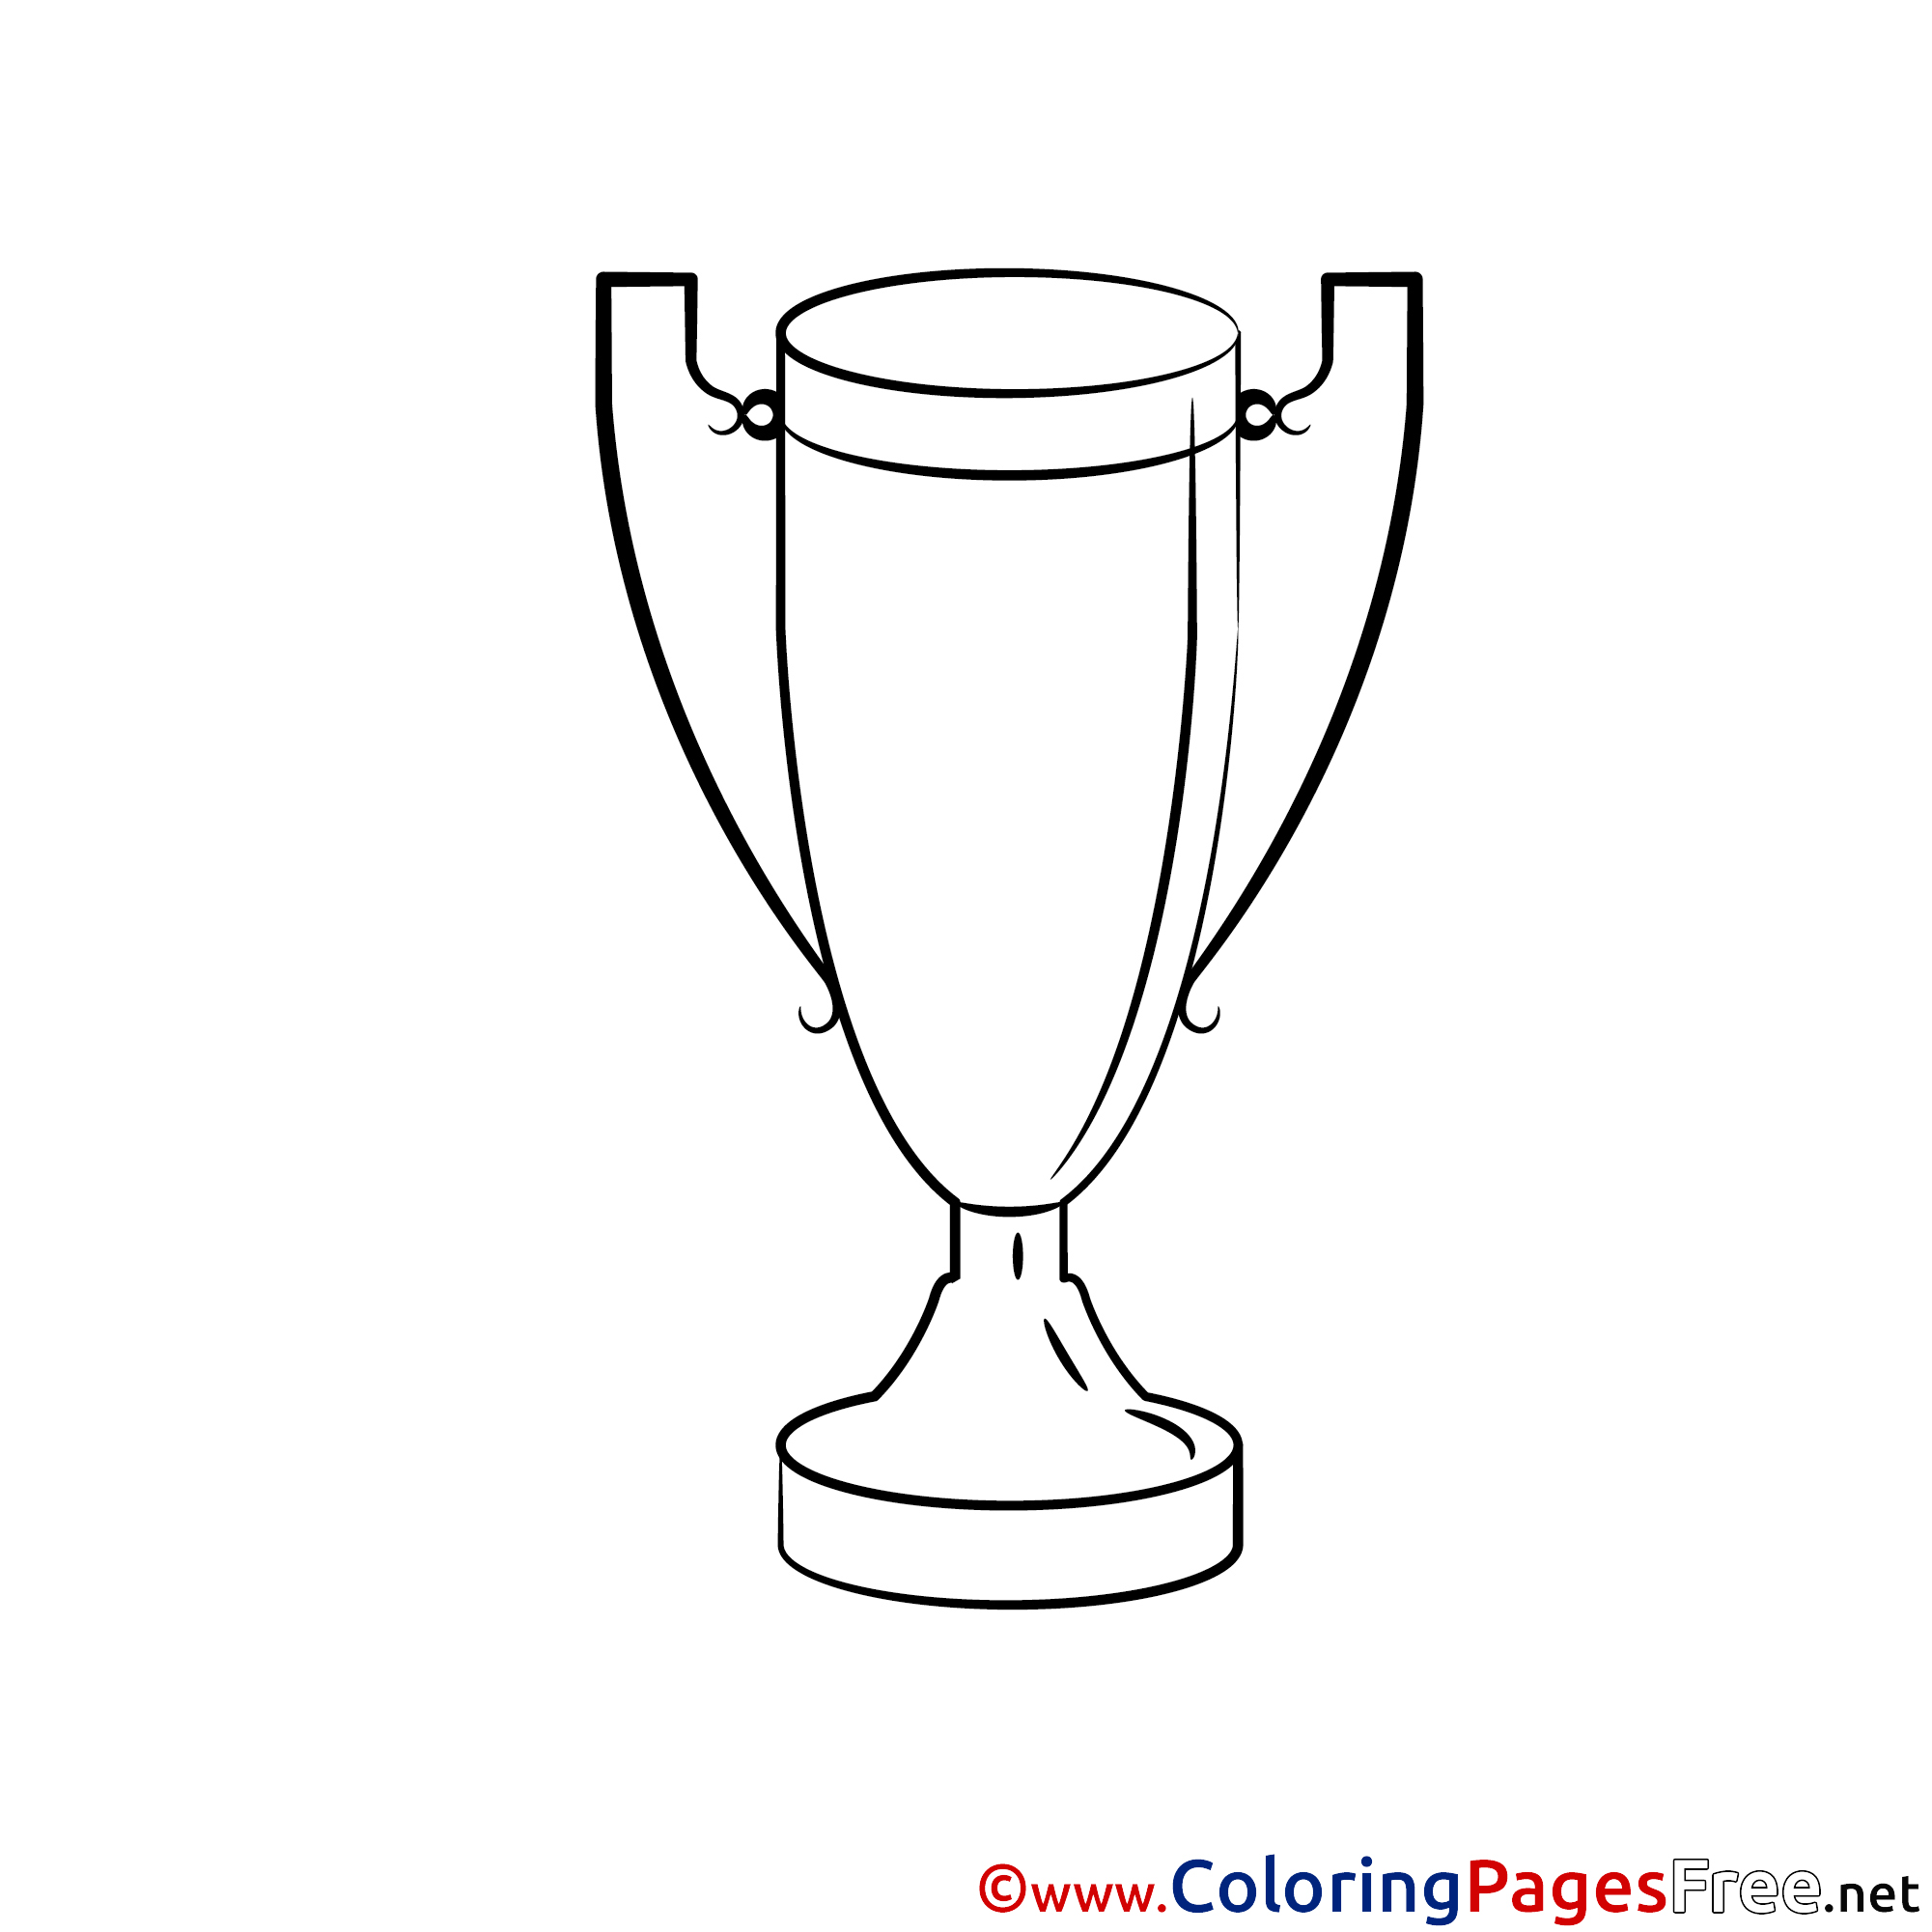 additionally  in addition  together with  in addition 8iE684q8T besides  together with  in addition cat shape template 508x374 furthermore  also  moreover cup for kids printable colouring page 20161019 1830905317. on printable coloring pages of dogs flowers